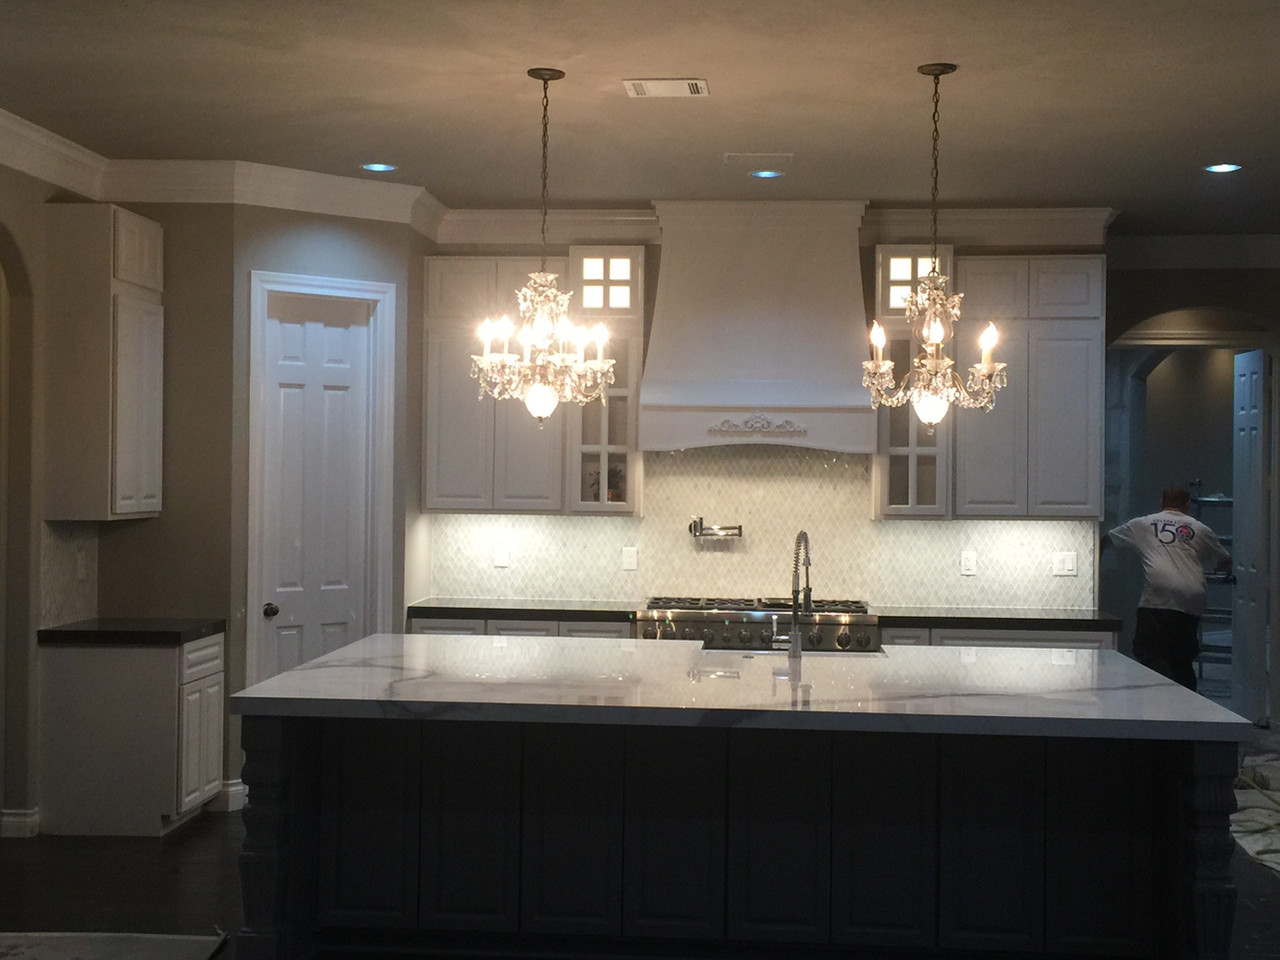 custom floating marble bar in the kitchen with overhanging chandeliers